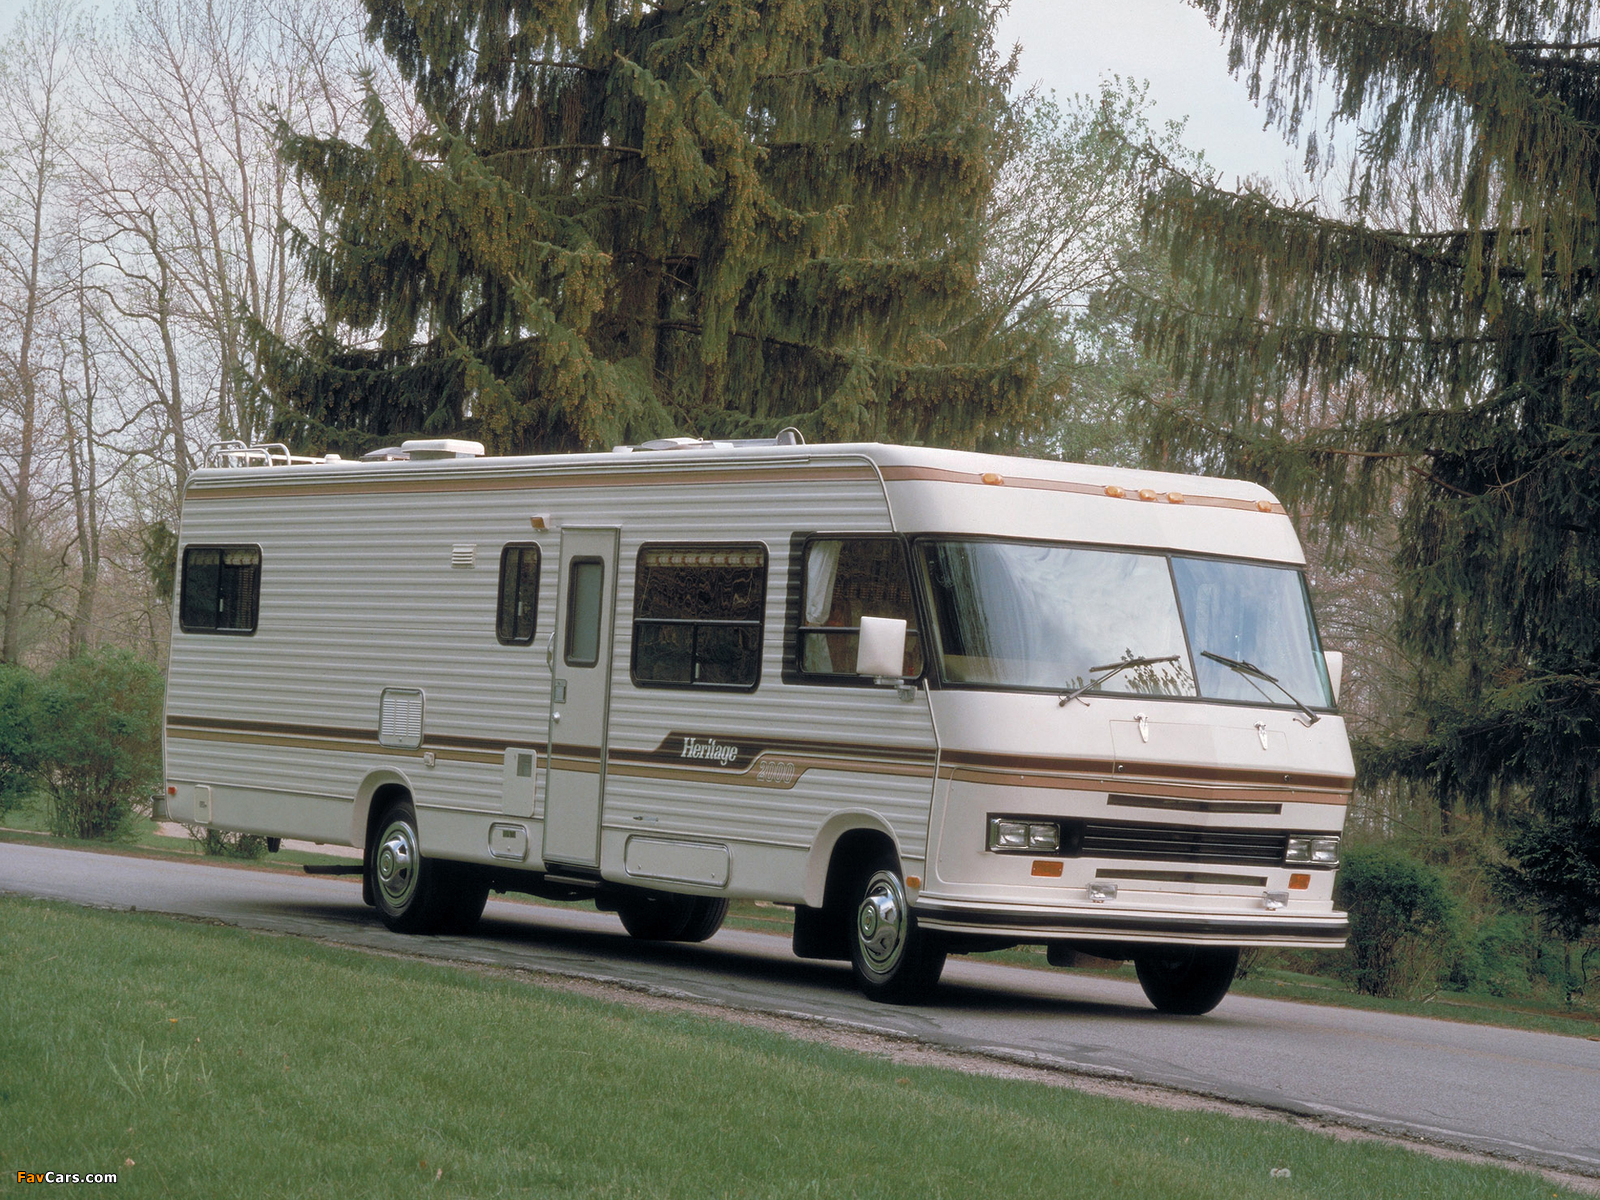 Images of Chevrolet Heritage 2000 Motorhome 1985 (1600 x 1200)